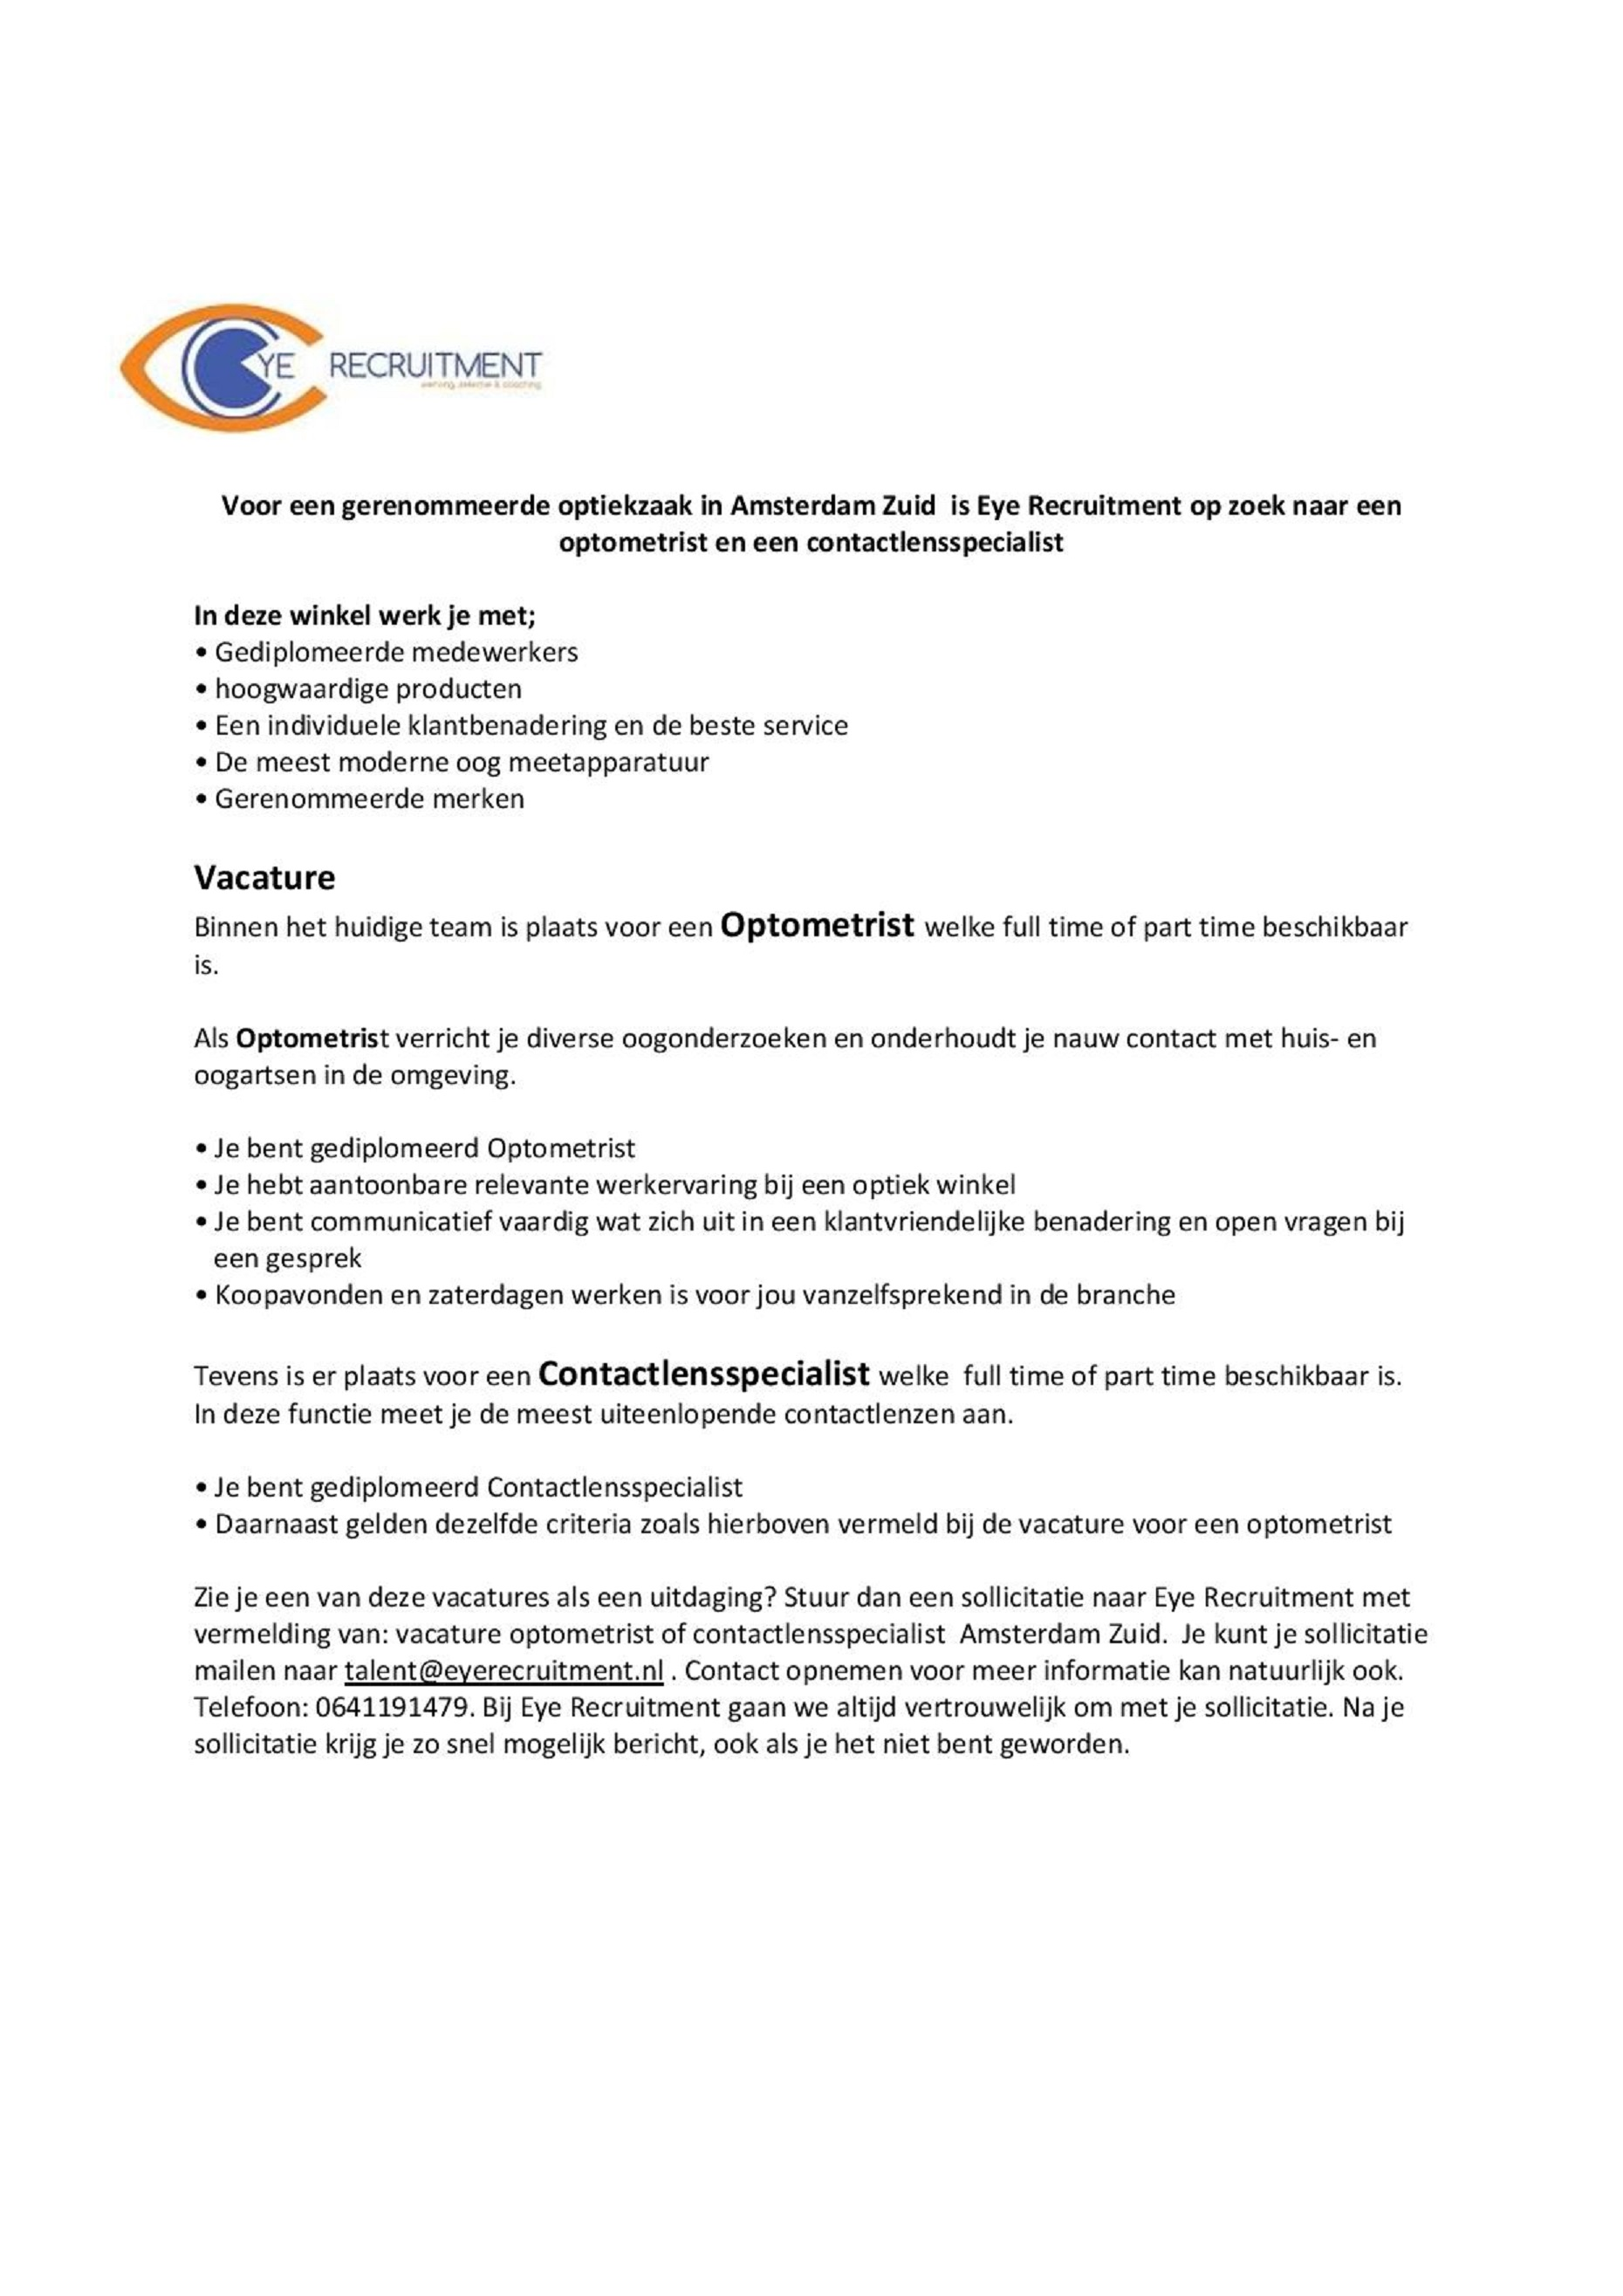 vacature omschrijving Toff-page-001